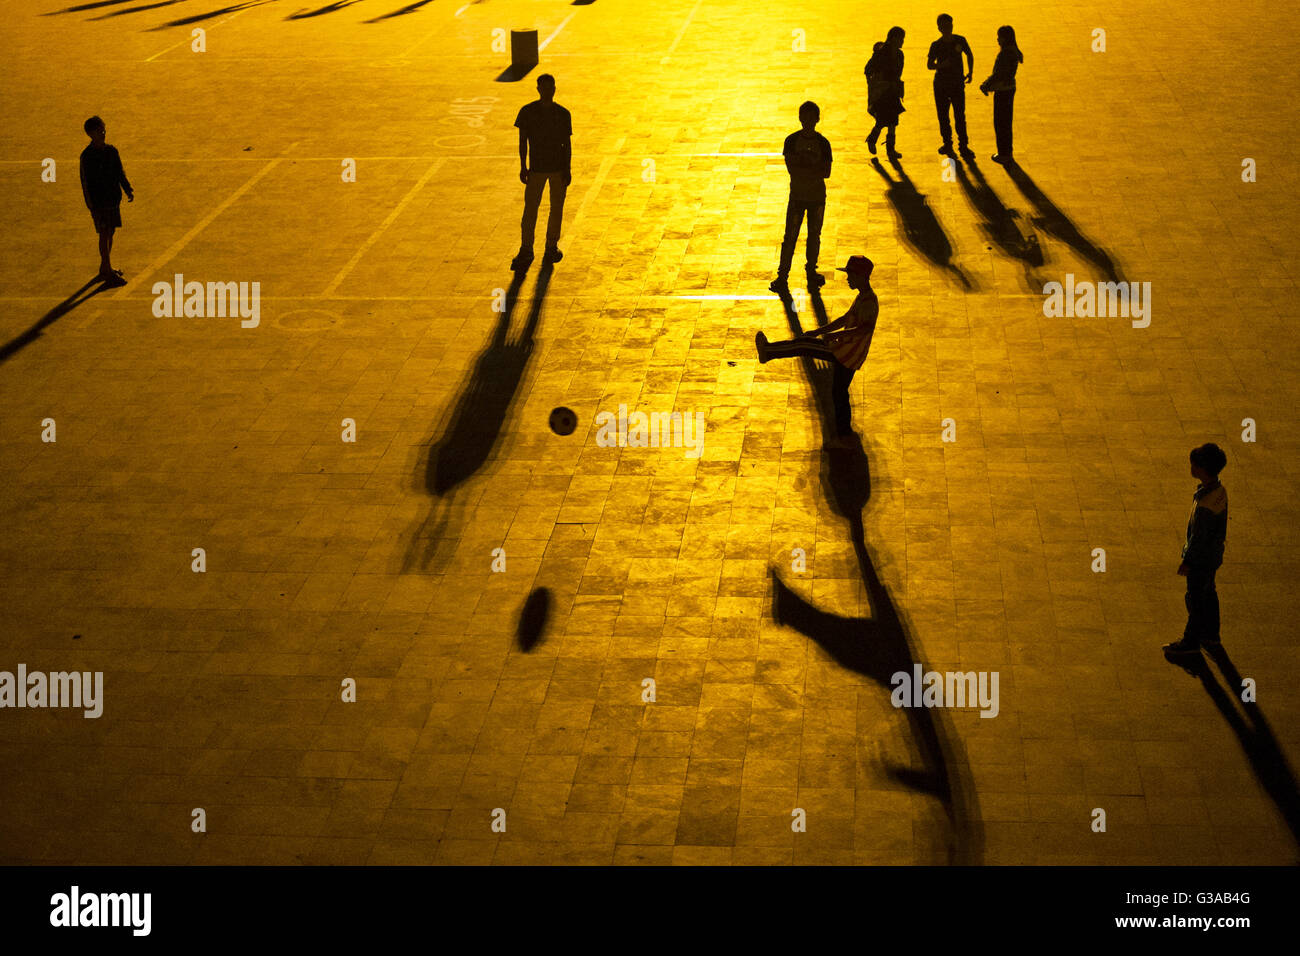 Young people play soccer at night on the Quang Truong square in Sapa, Lao Cai province, Vietnam - Stock Image